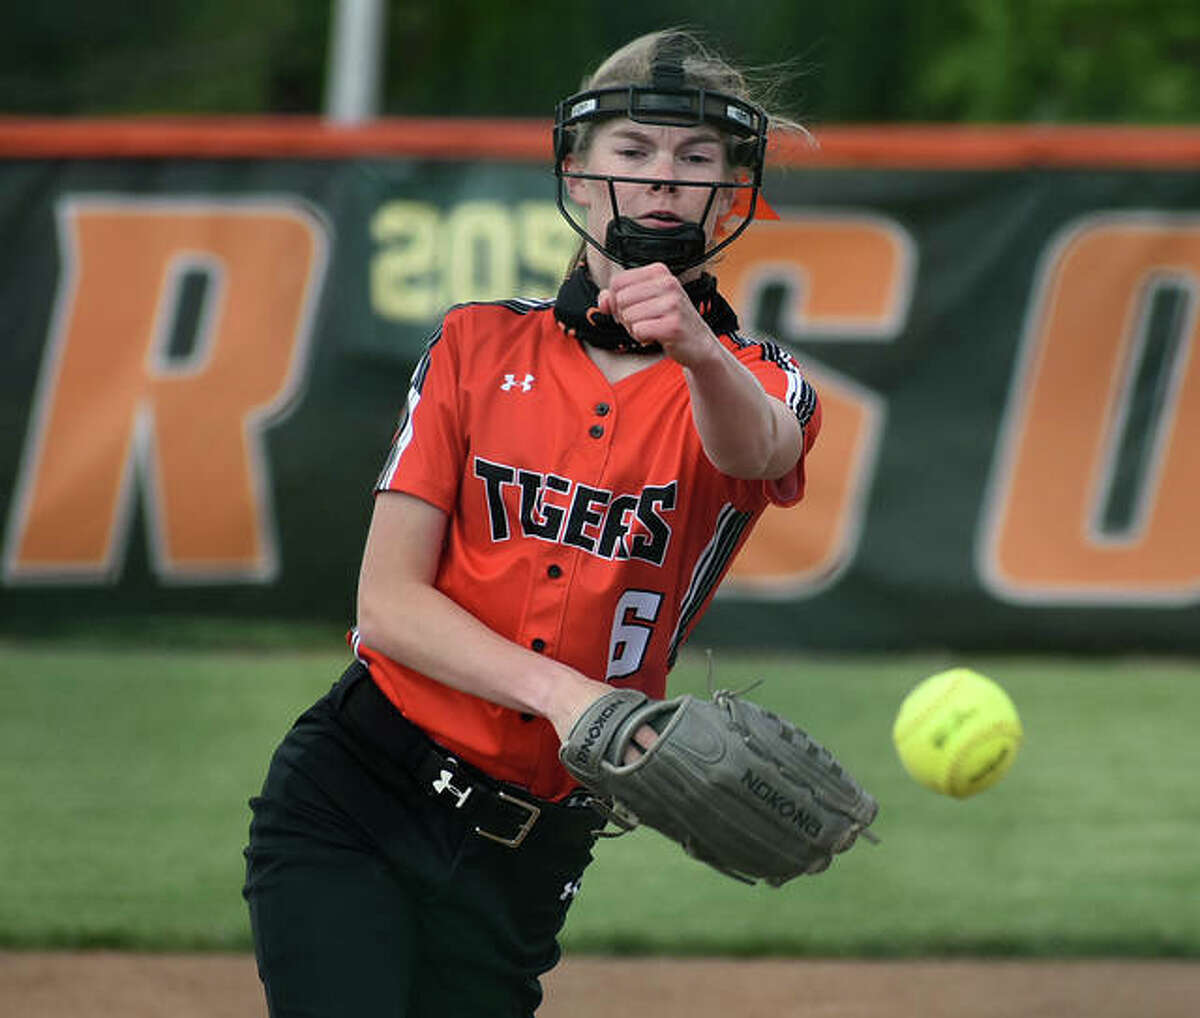 Edwardsville starting pitcher Ryleigh Owens delivers a pitch to a Collinsville hitter in the first inning of a game in Edwardsville.